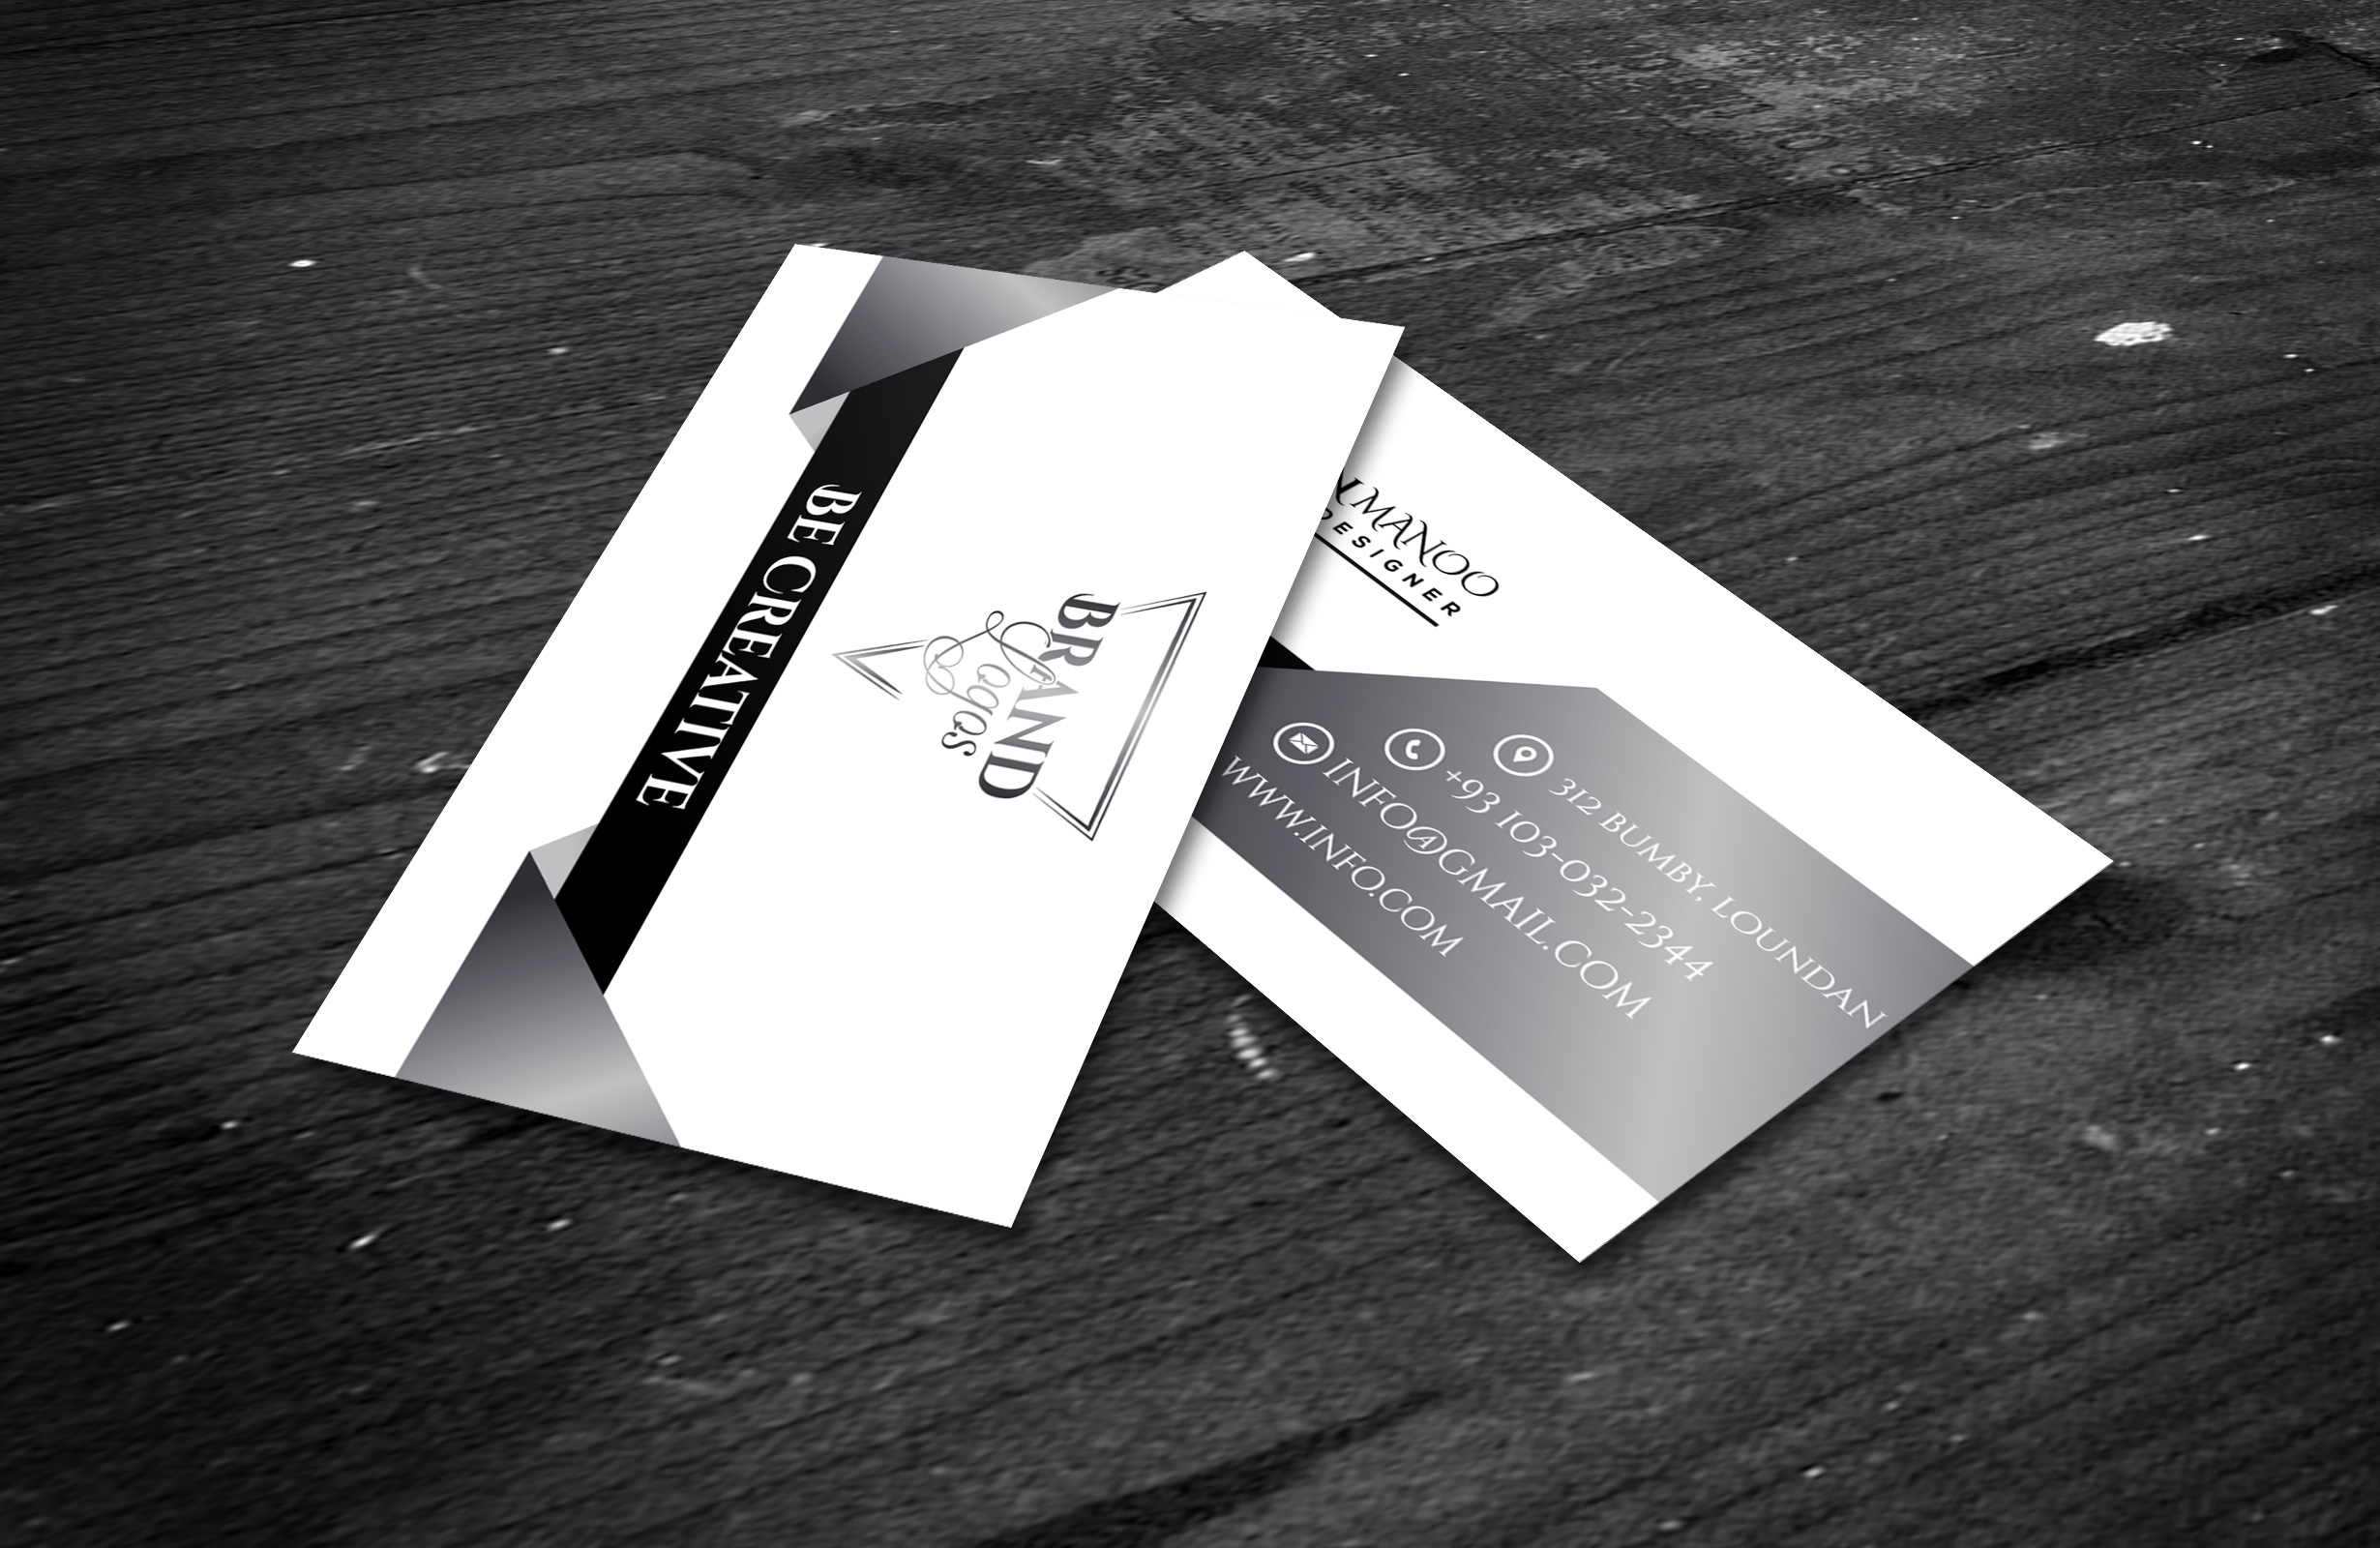 I will design a professional business card for your Business/brand